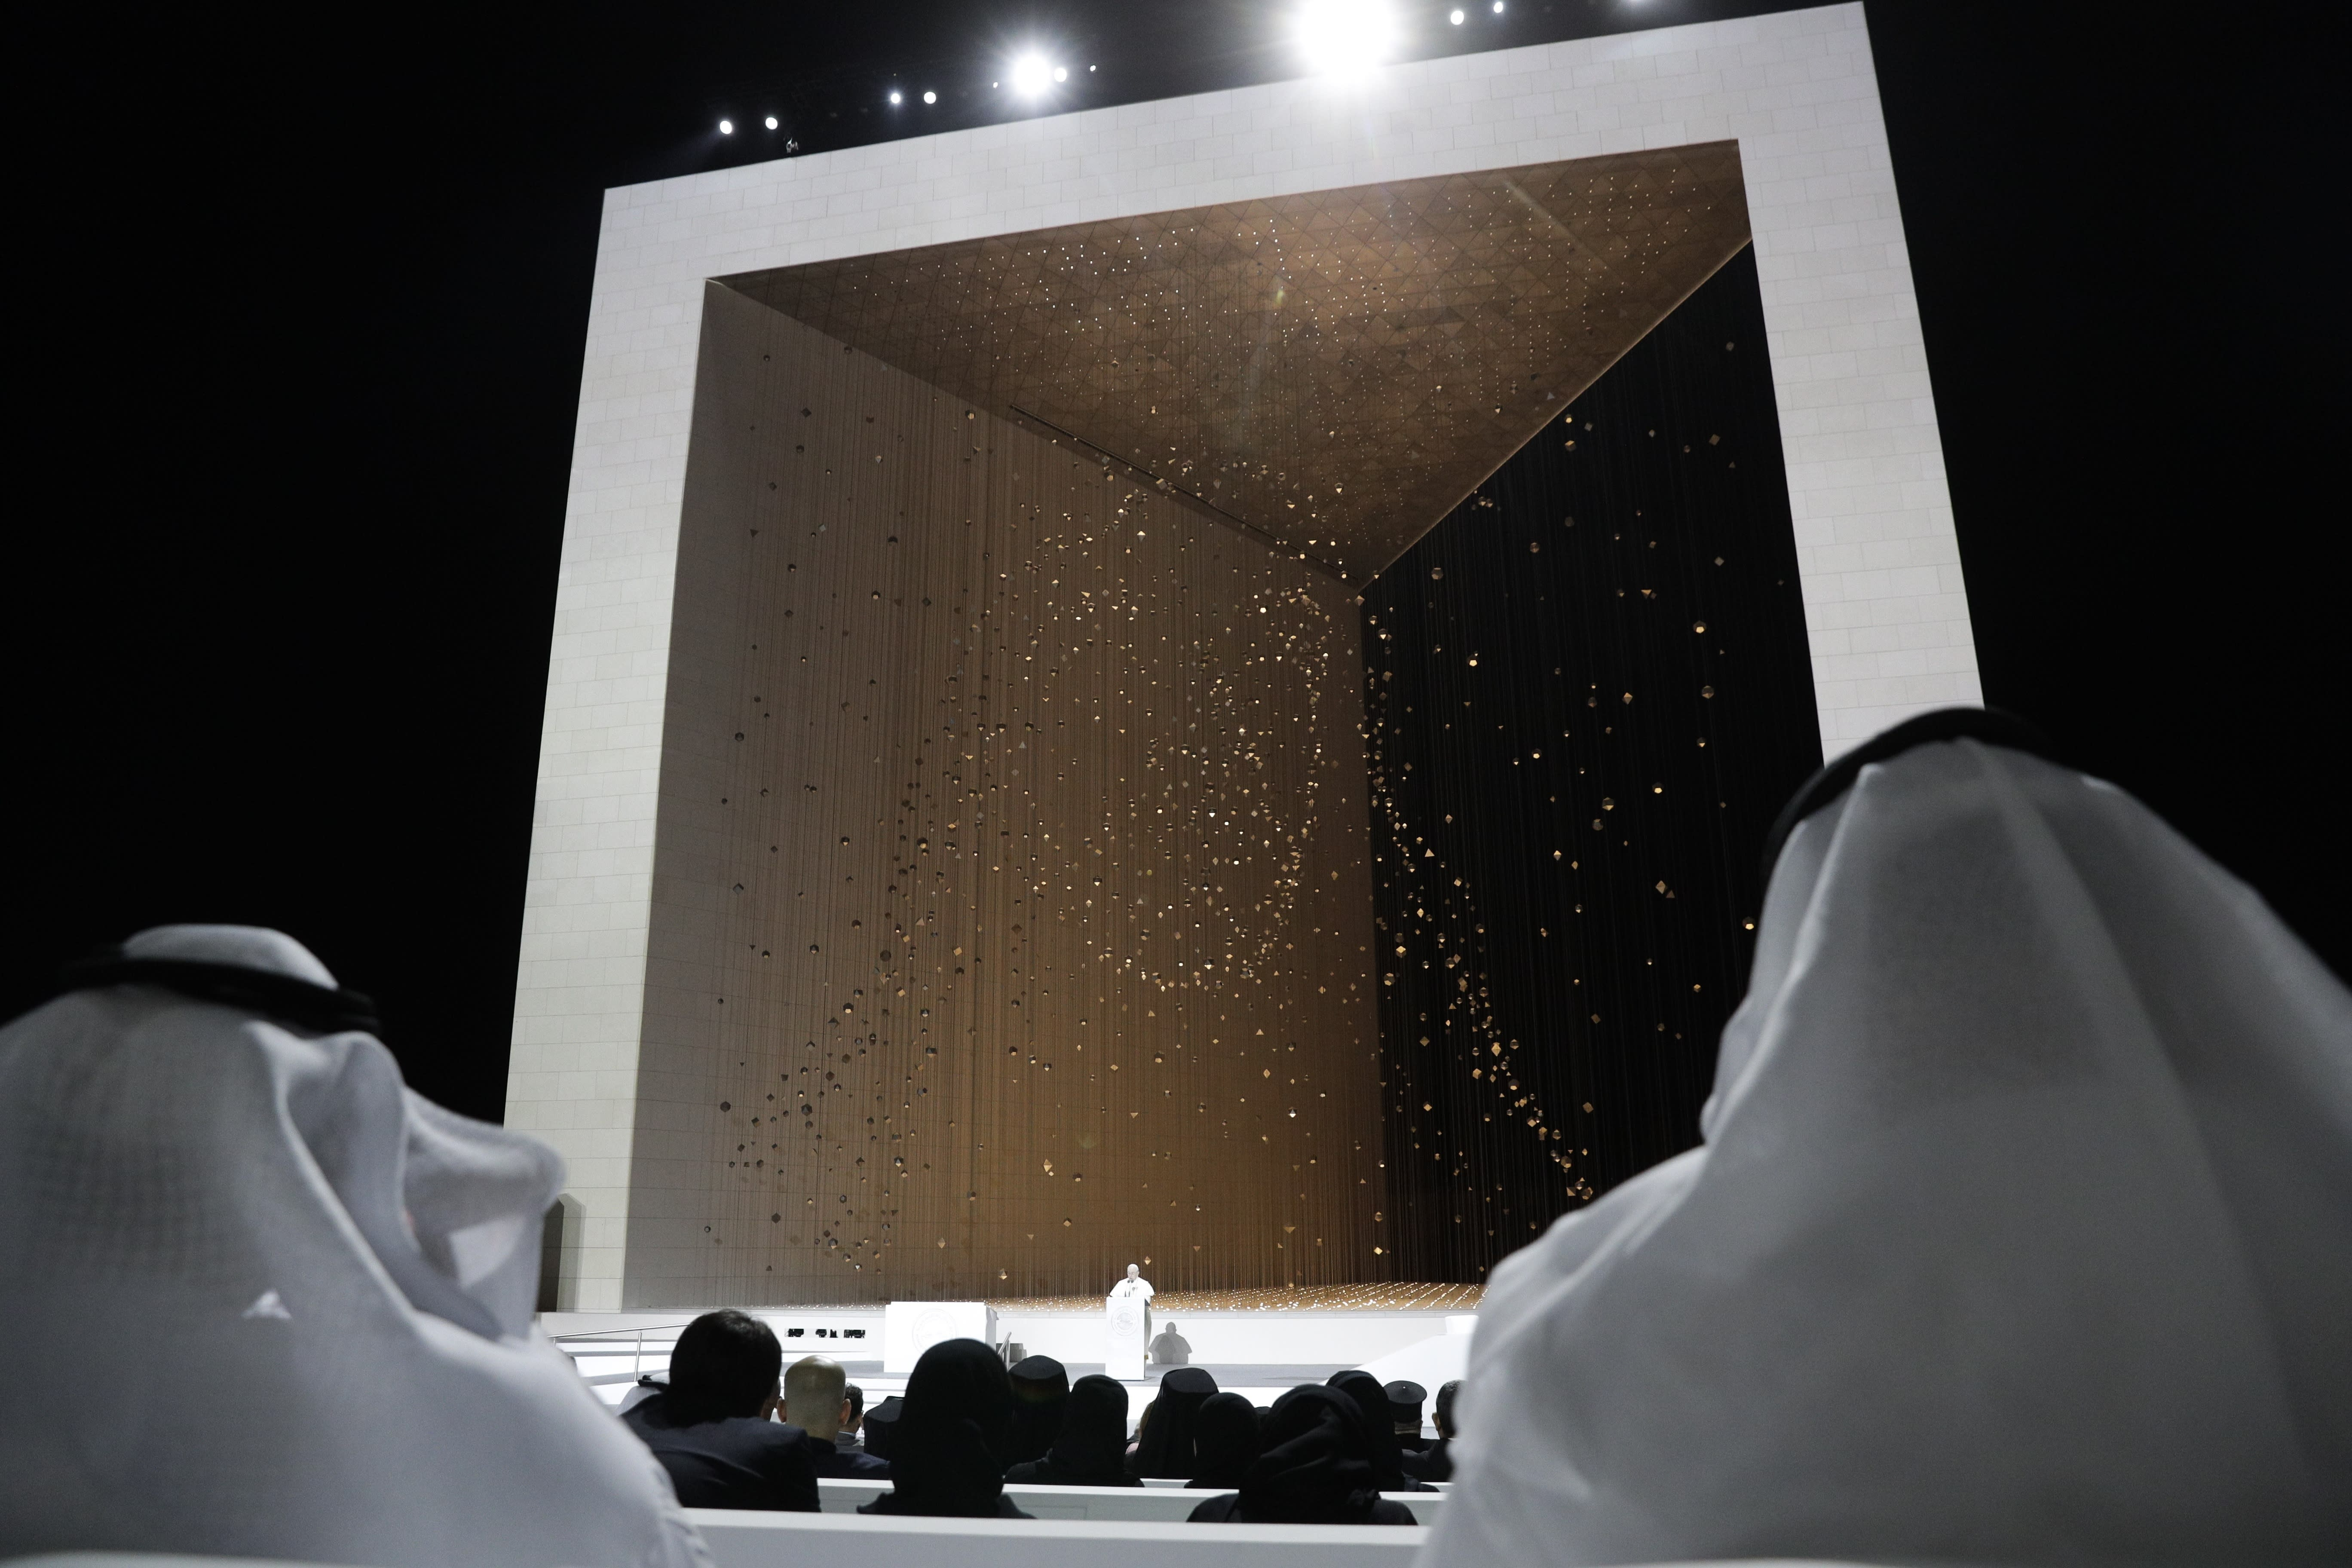 Pope Francis speaks during an Interreligious meeting at the Founder's Memorial in Abu Dhabi, United Arab Emirates, Monday, Feb. 4, 2019. Pope Francis arrived in Abu Dhabi on Sunday. His visit represents the first papal trip ever to the Arabian Peninsula, the birthplace of Islam. (AP Photo/Andrew Medichini)